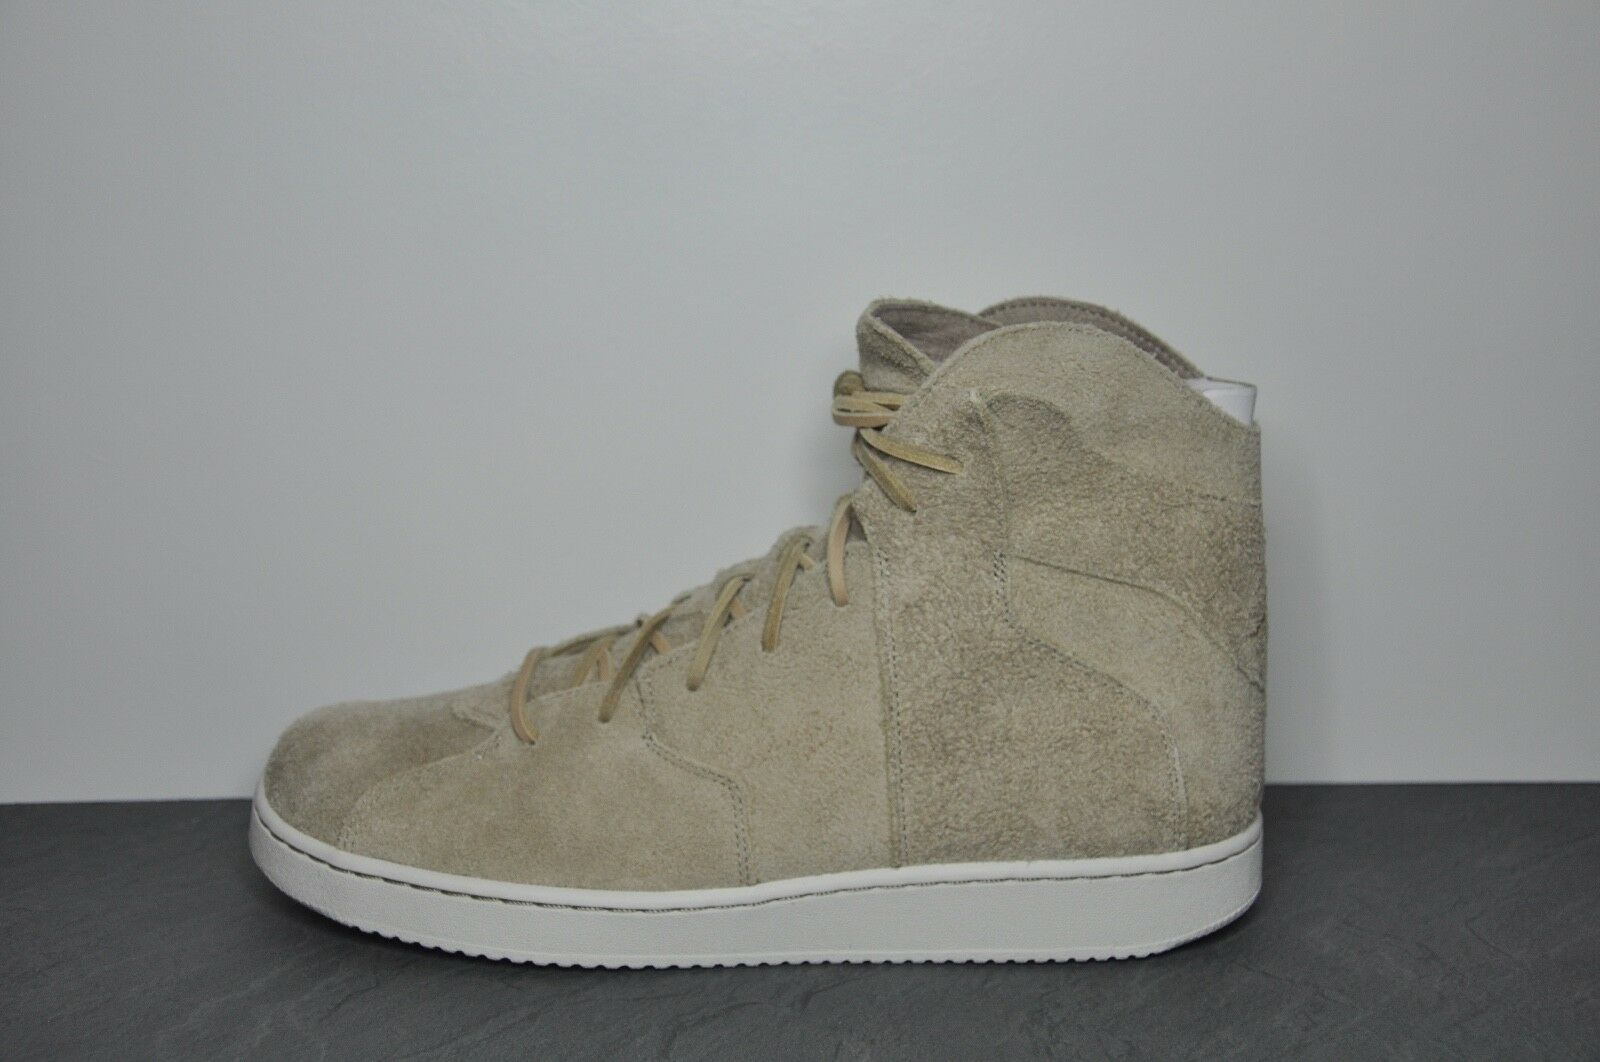 Nike Jordan Westbrook 0.2 Suede BasketBall Trainer Shoe Boot - Size